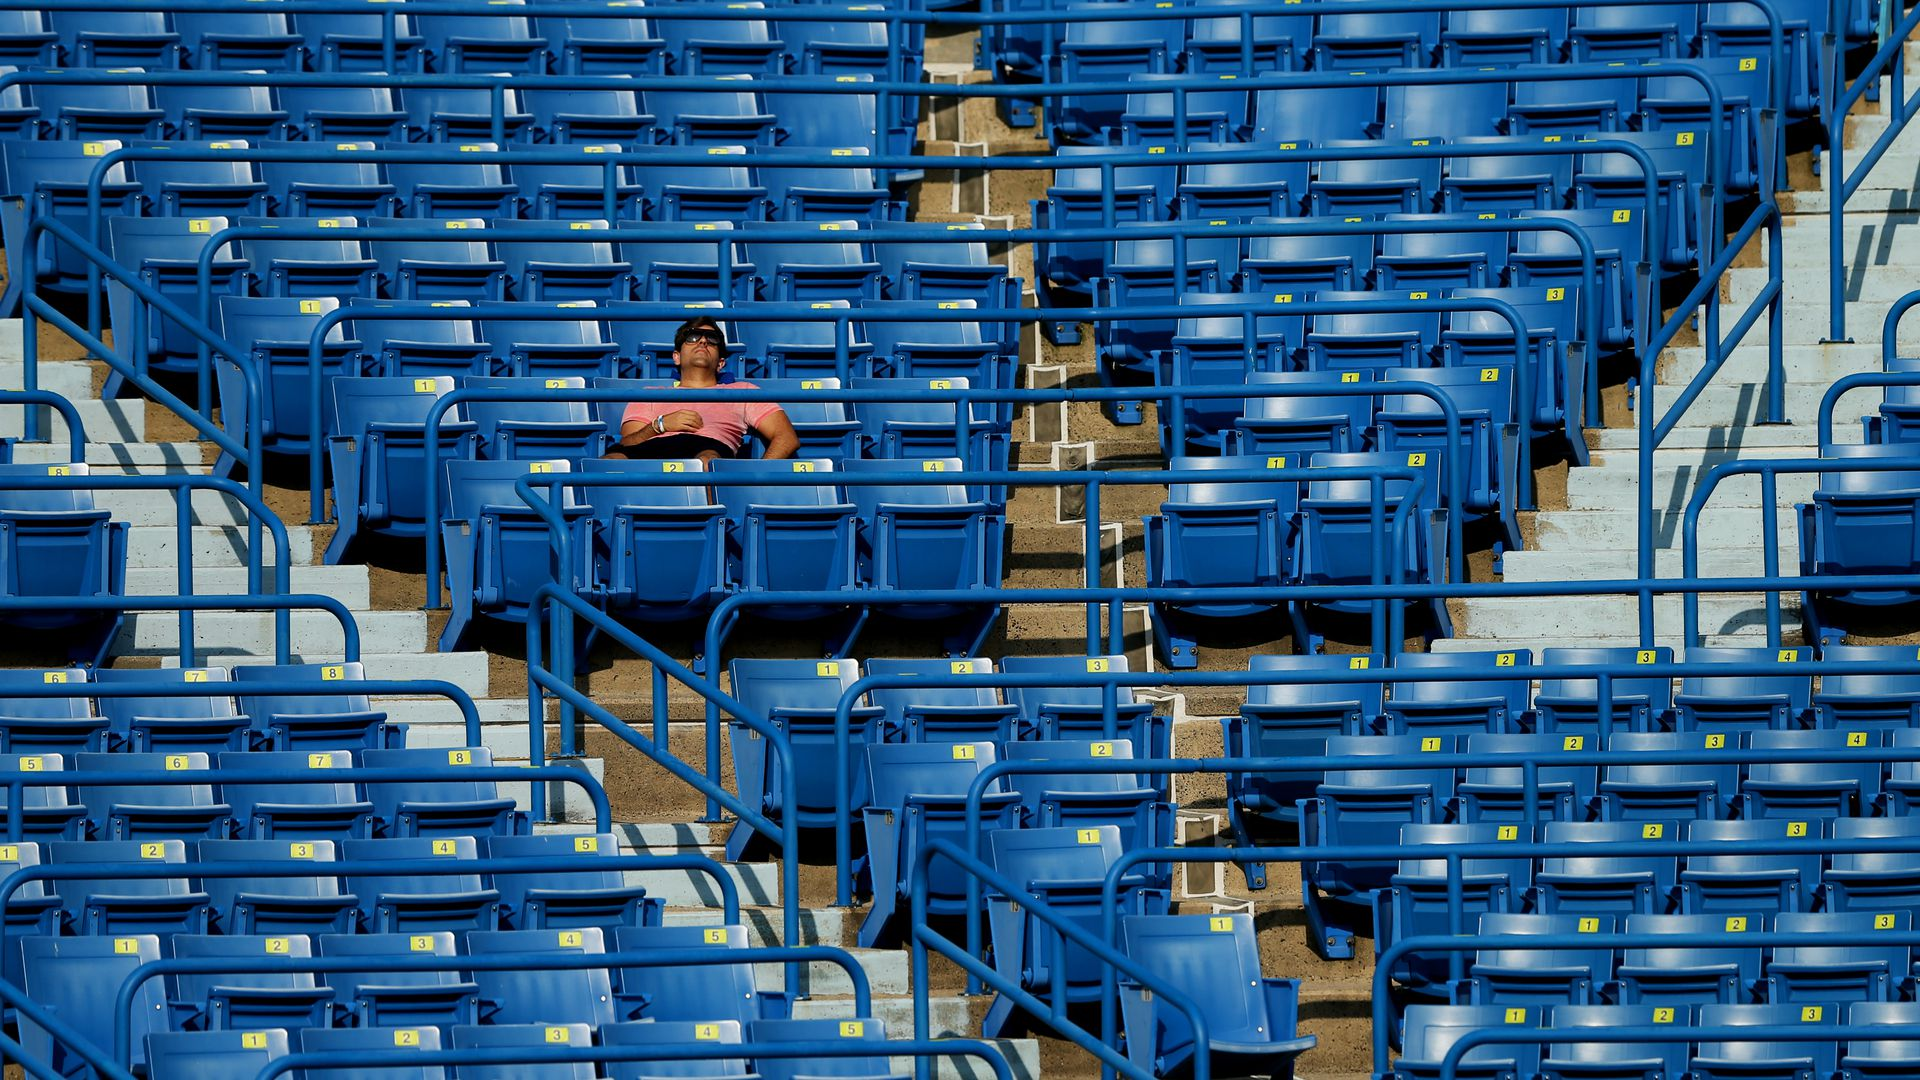 A man catches some Z's during a tennis match, surrounded by empty stadium seats.